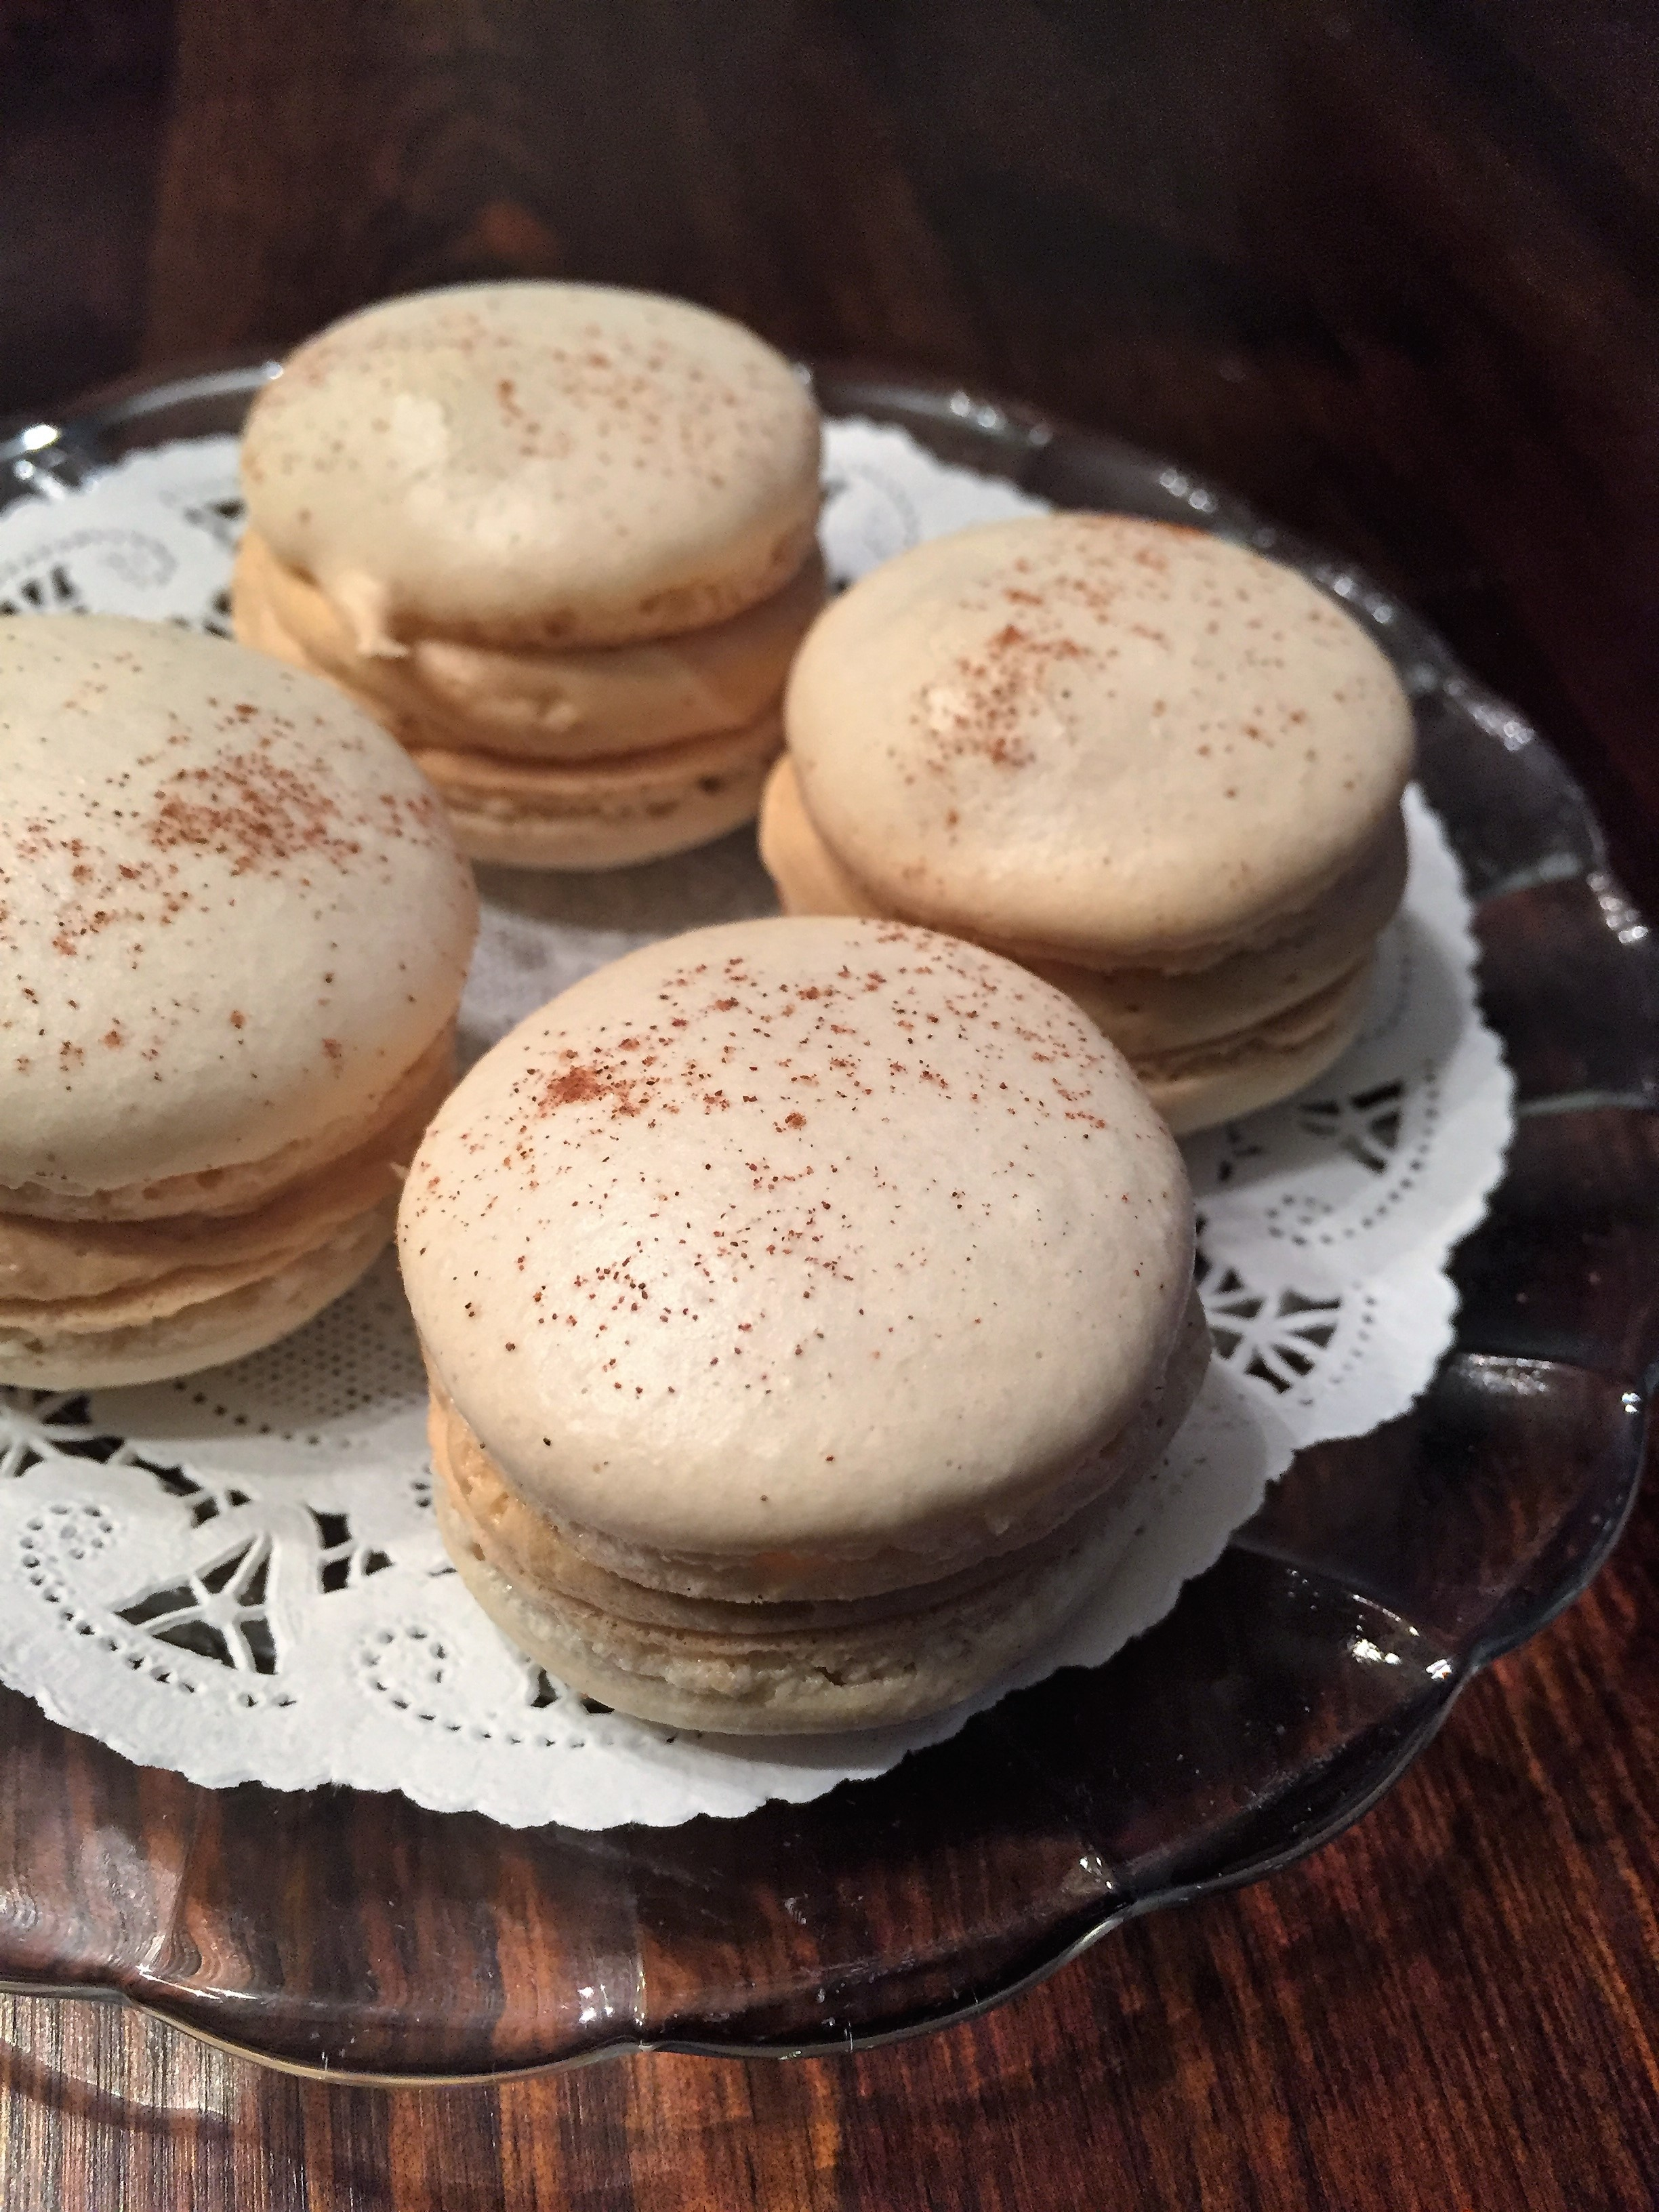 Macarons with dulce de leche filling - made by me!!